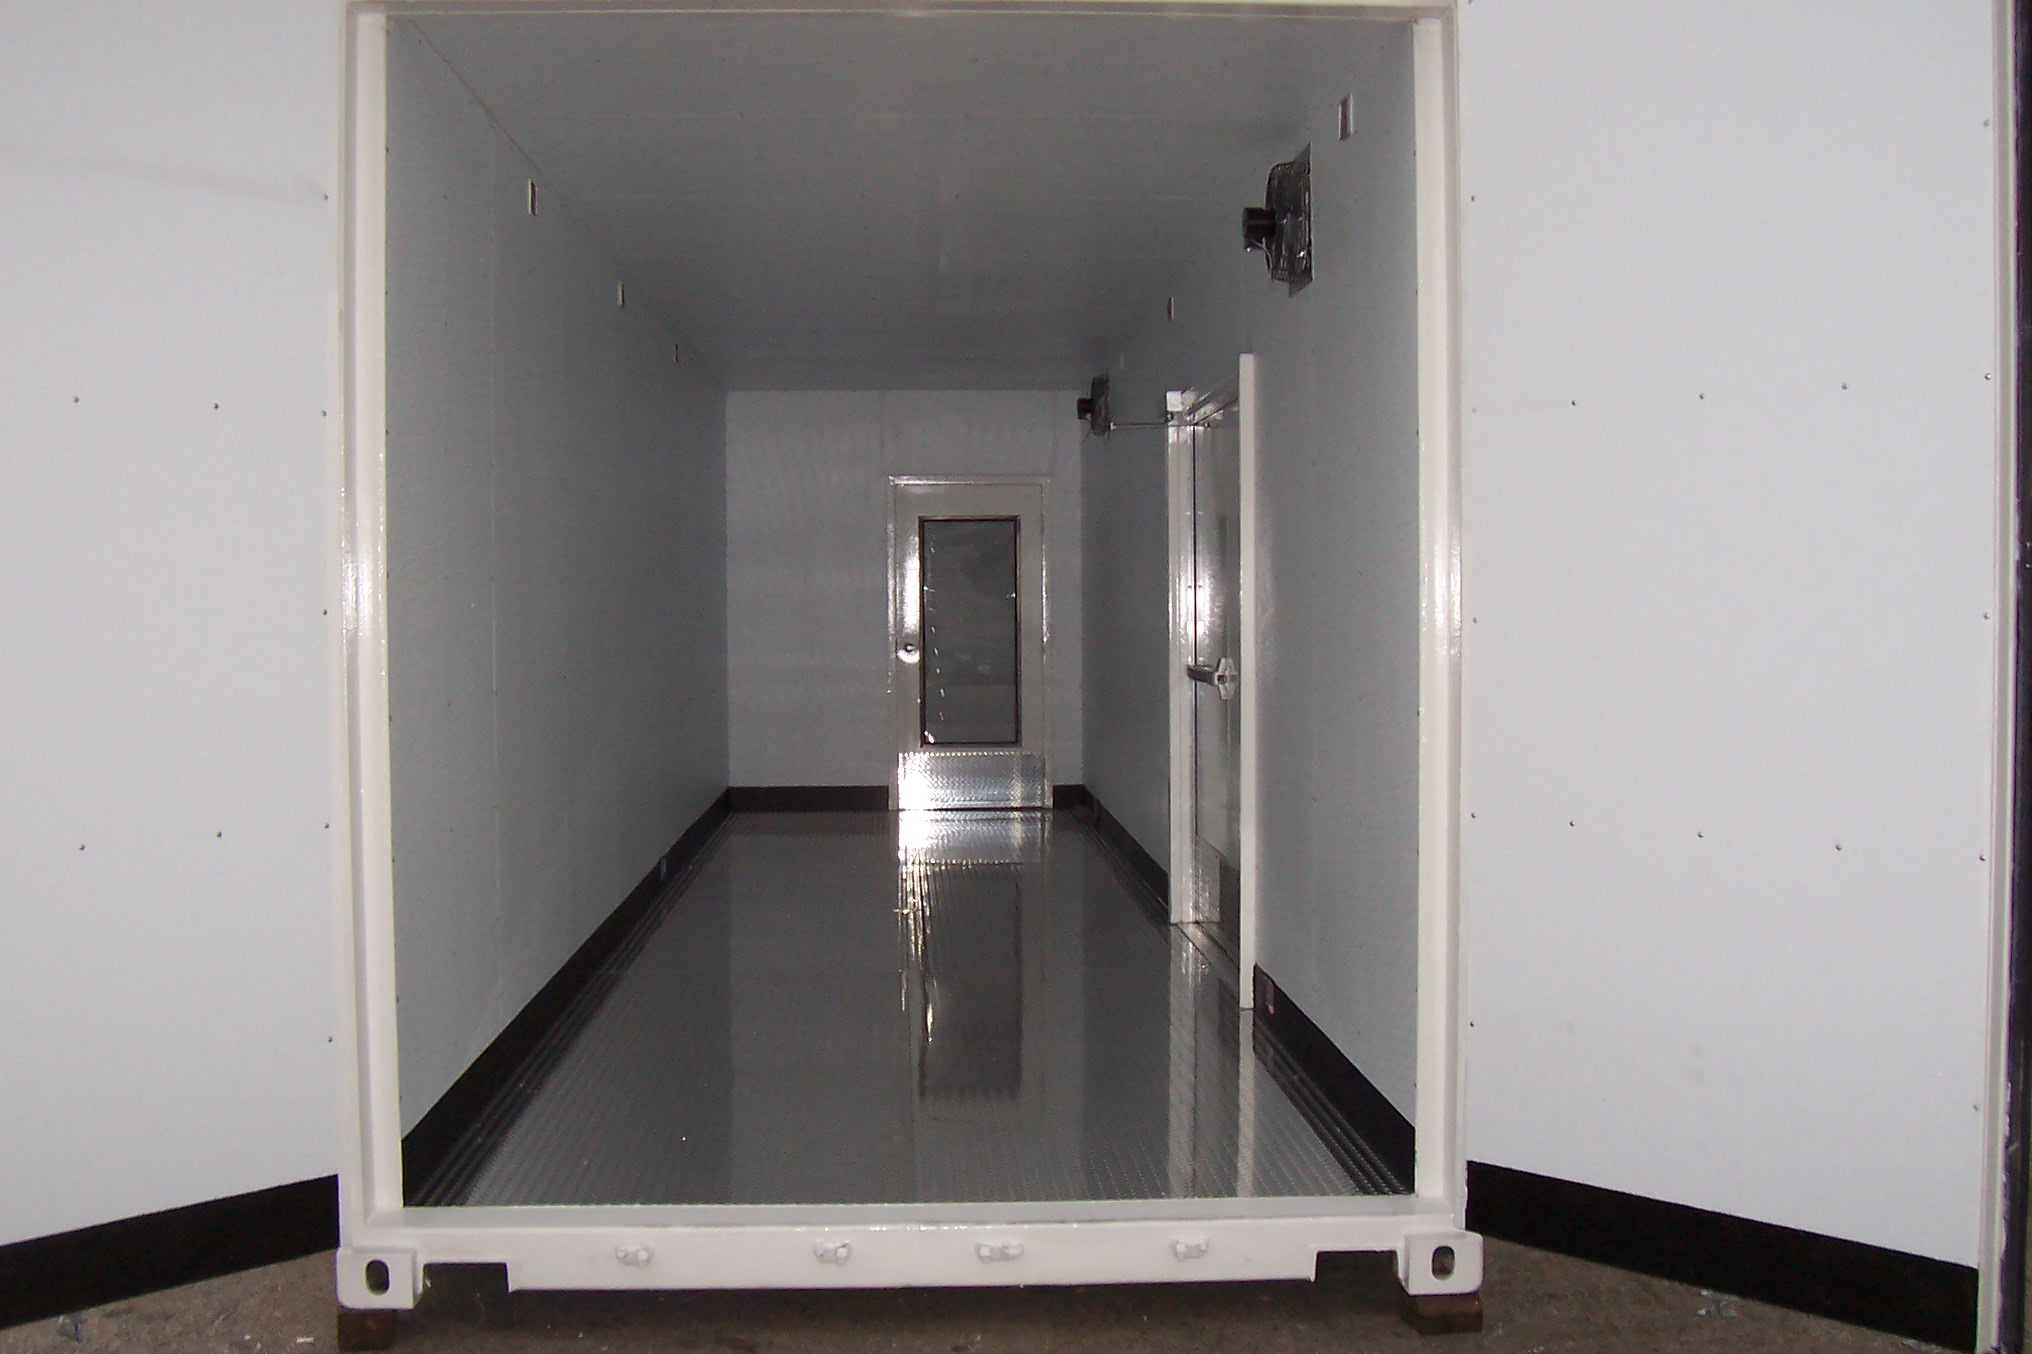 Insulation, electric work and diamond-plate flooring